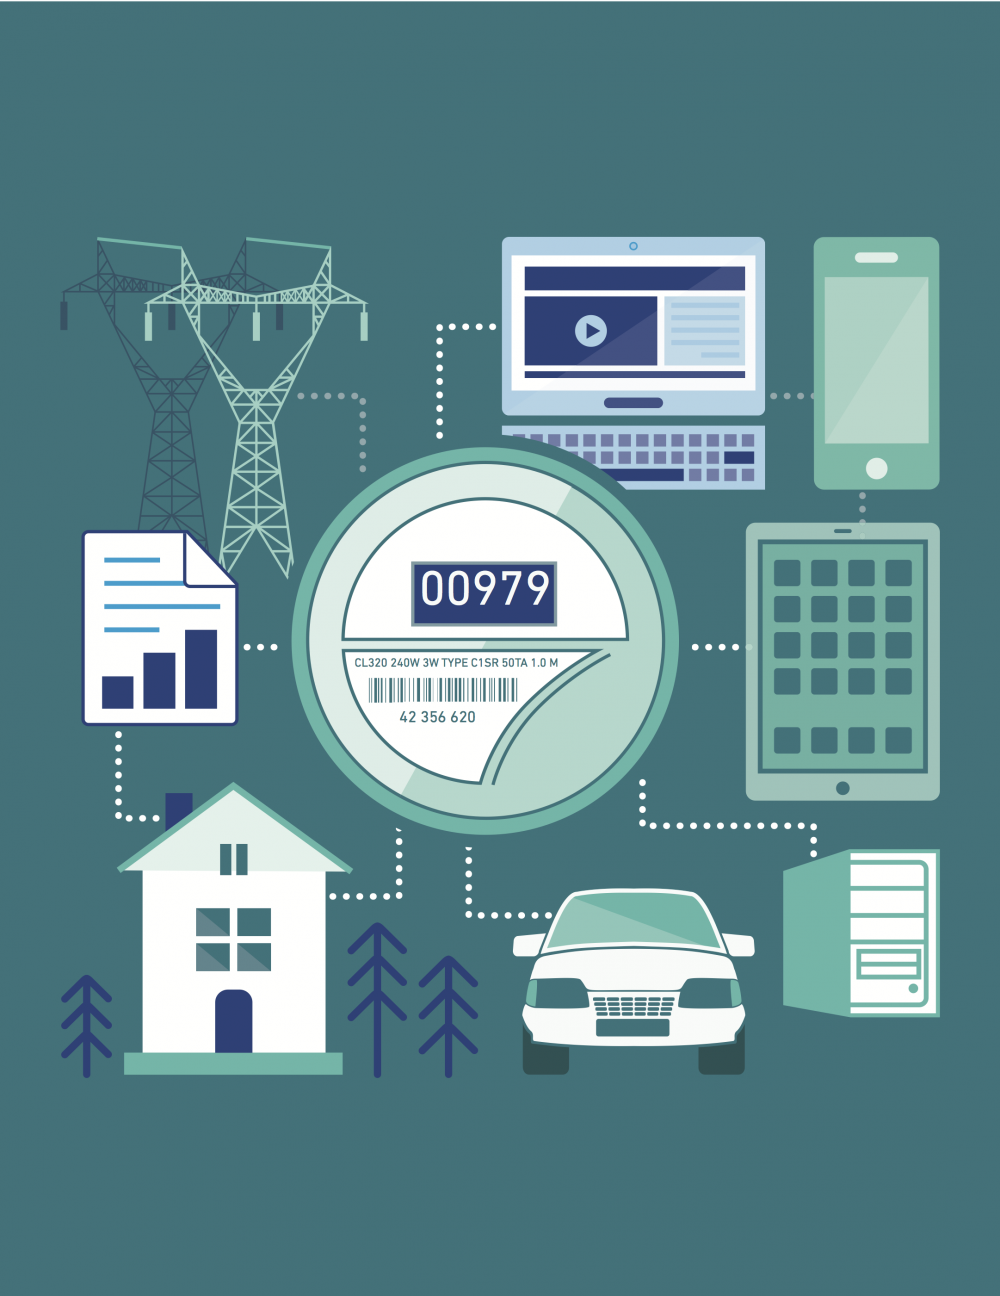 Smart Metering Systems